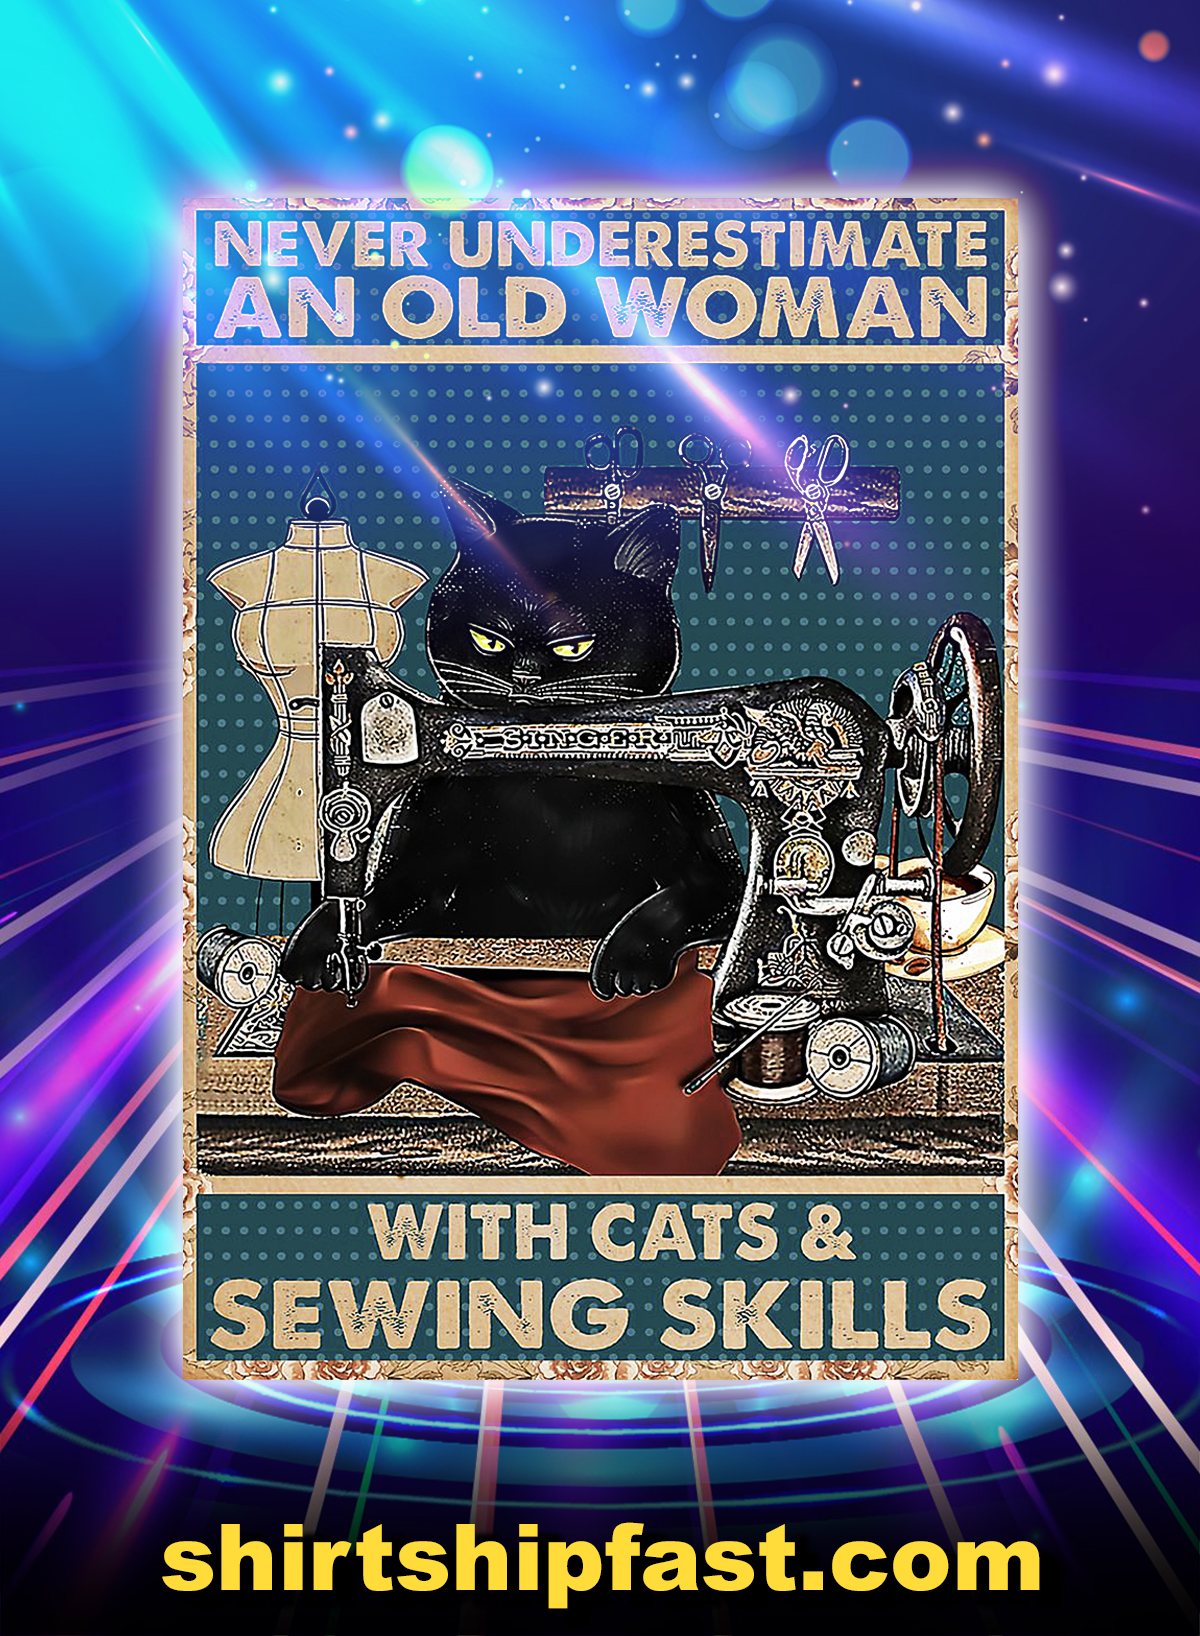 Black cat never underestimate an old woman with cats and sewing skills poster - A4